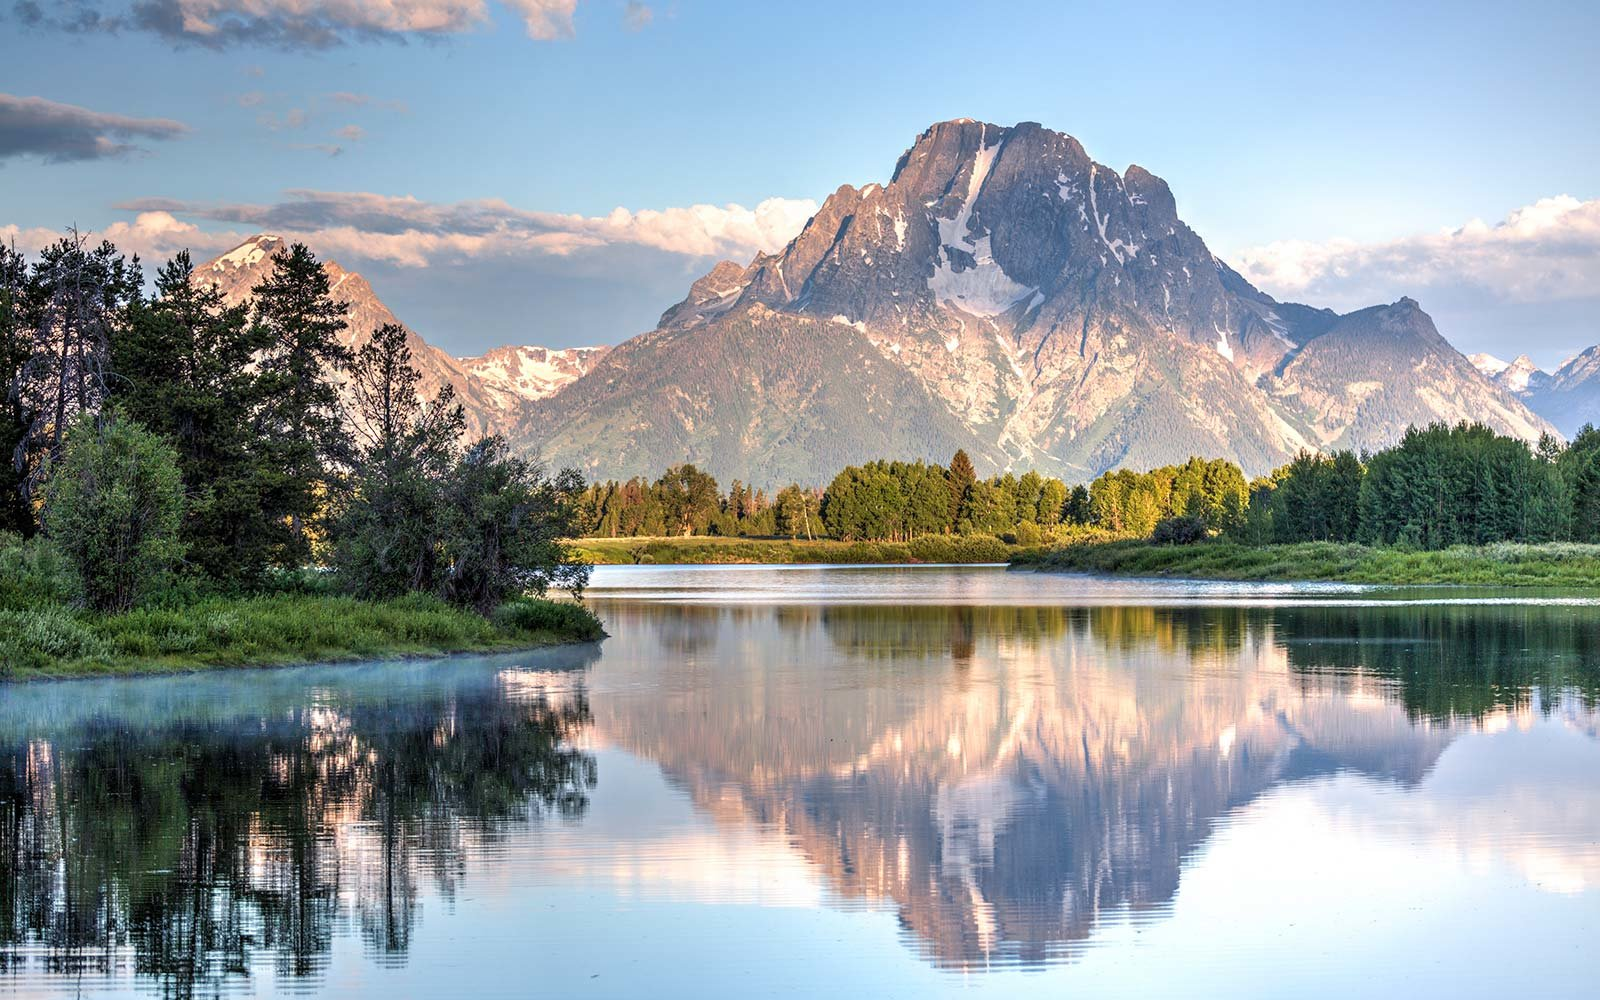 Mount Moran, Oxbow Bend Turnout, Grand Teton National Park, Wyoming